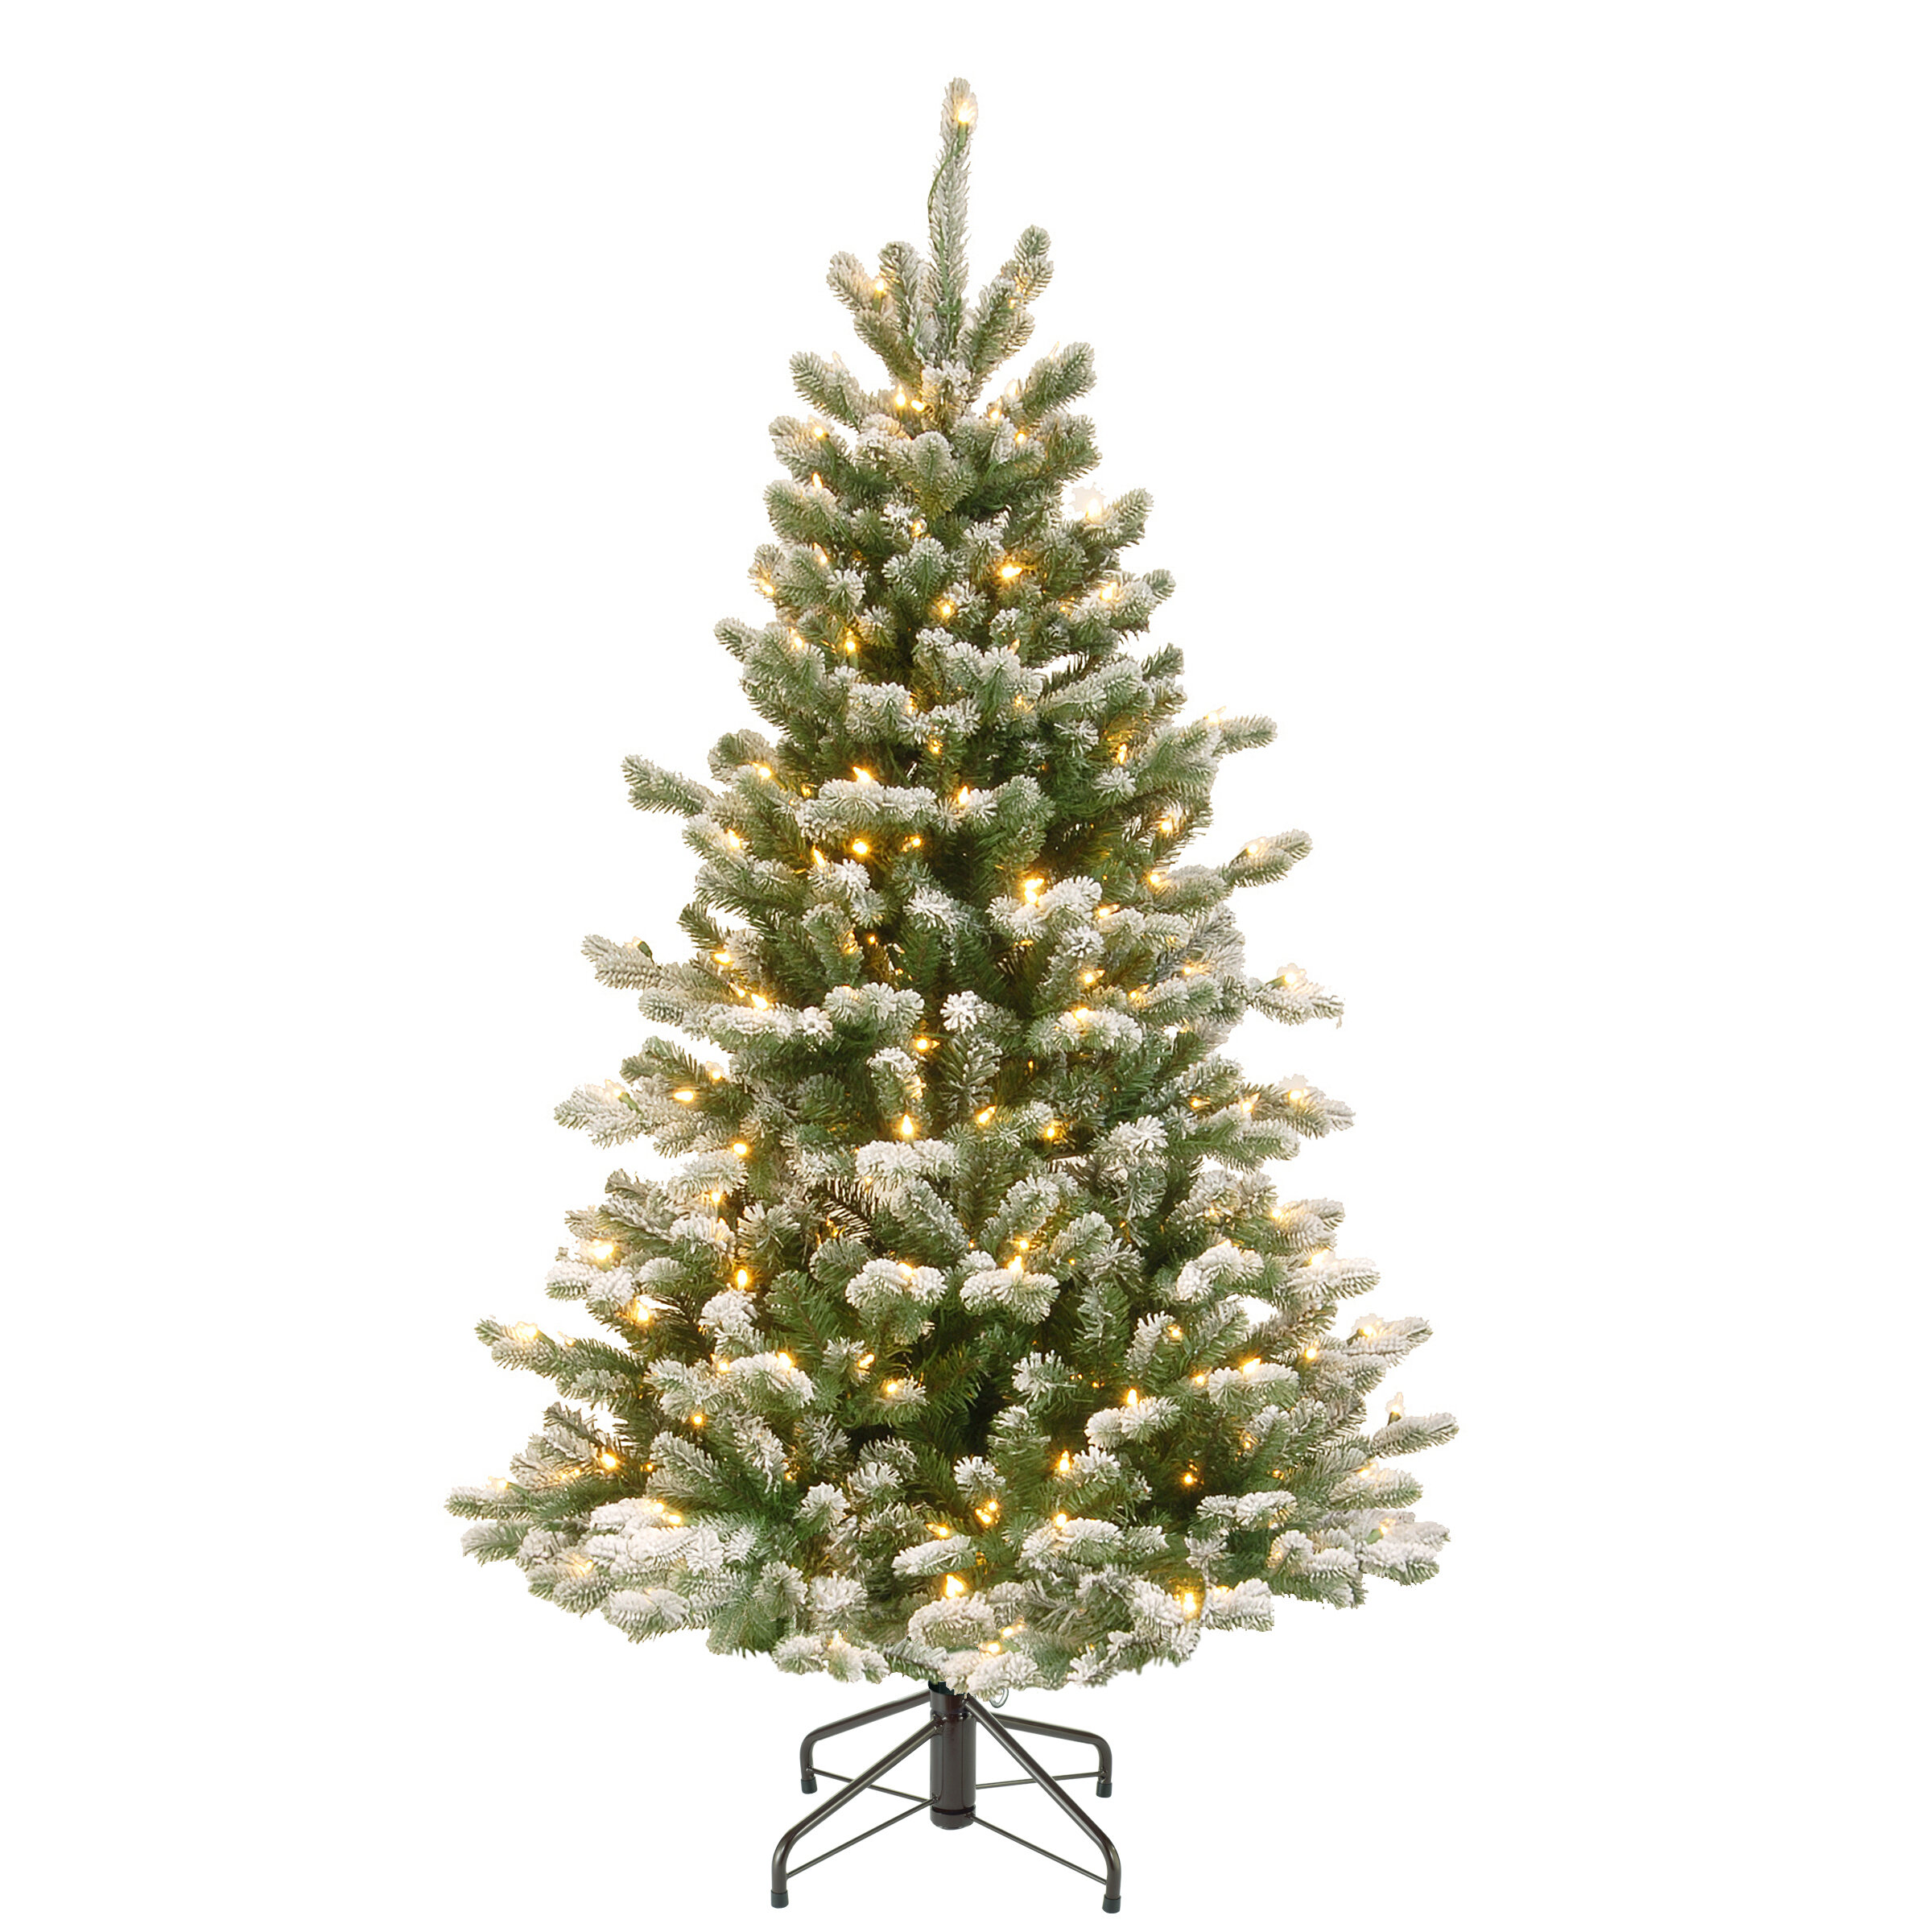 The Holiday Aisle Snowy Sheffield 4 5 Green Spruce Artificial Christmas Tree With 300 Clear White Lights Reviews Wayfair